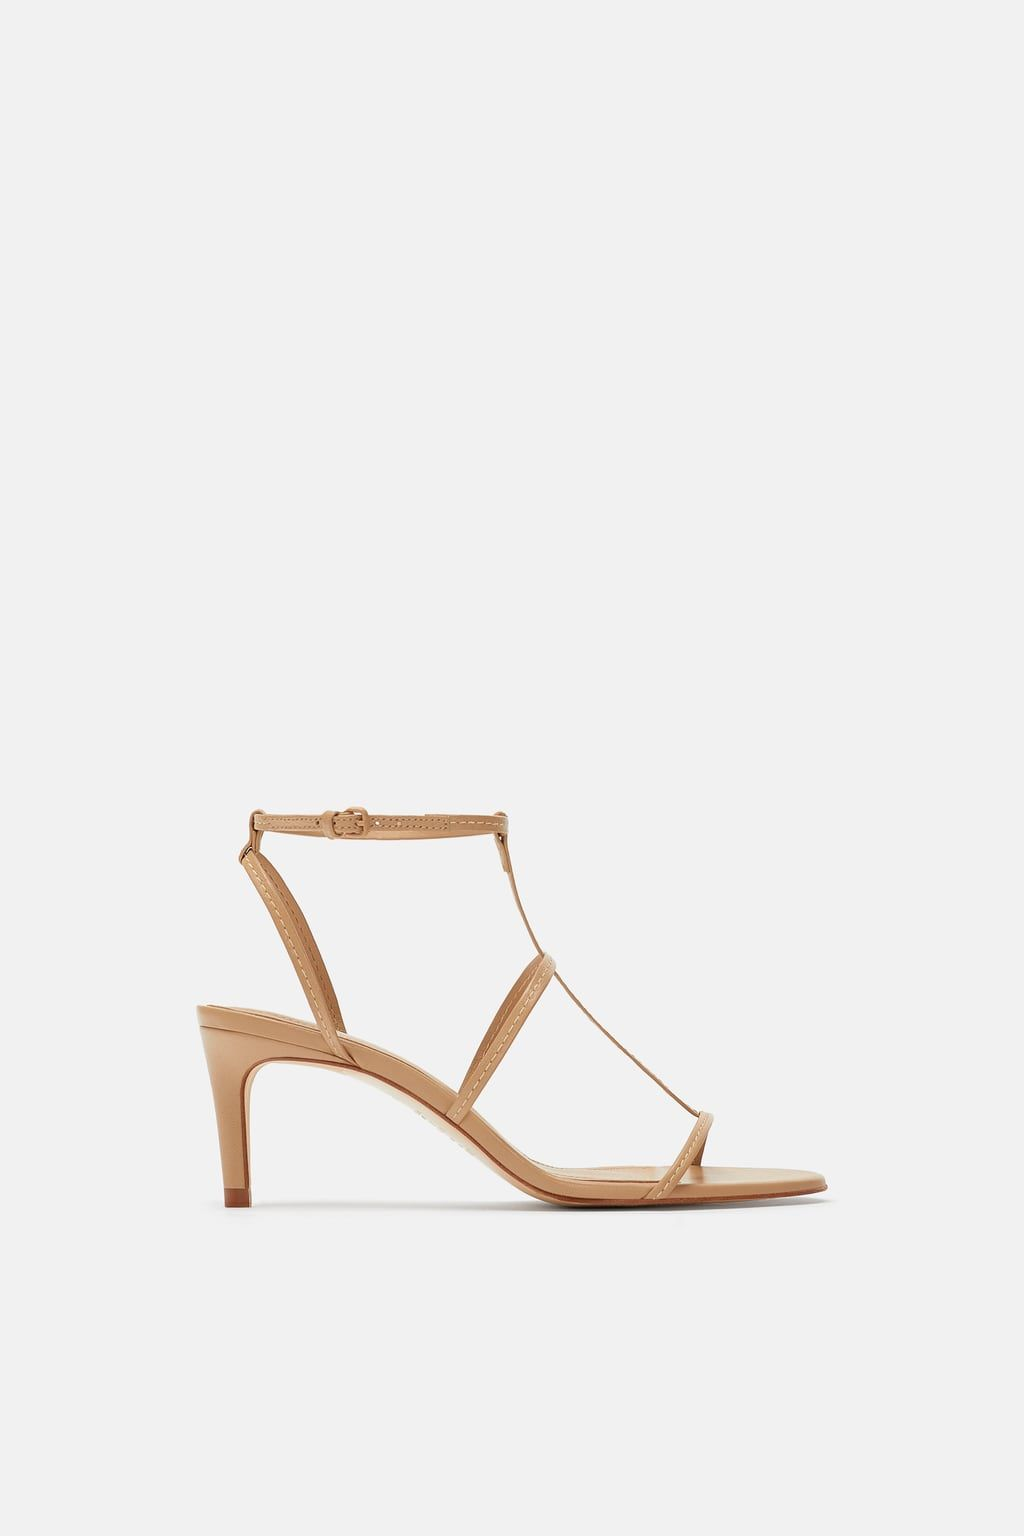 In High Sandals Leather Strappy 2019Wishlist Heel CexQrBWdo